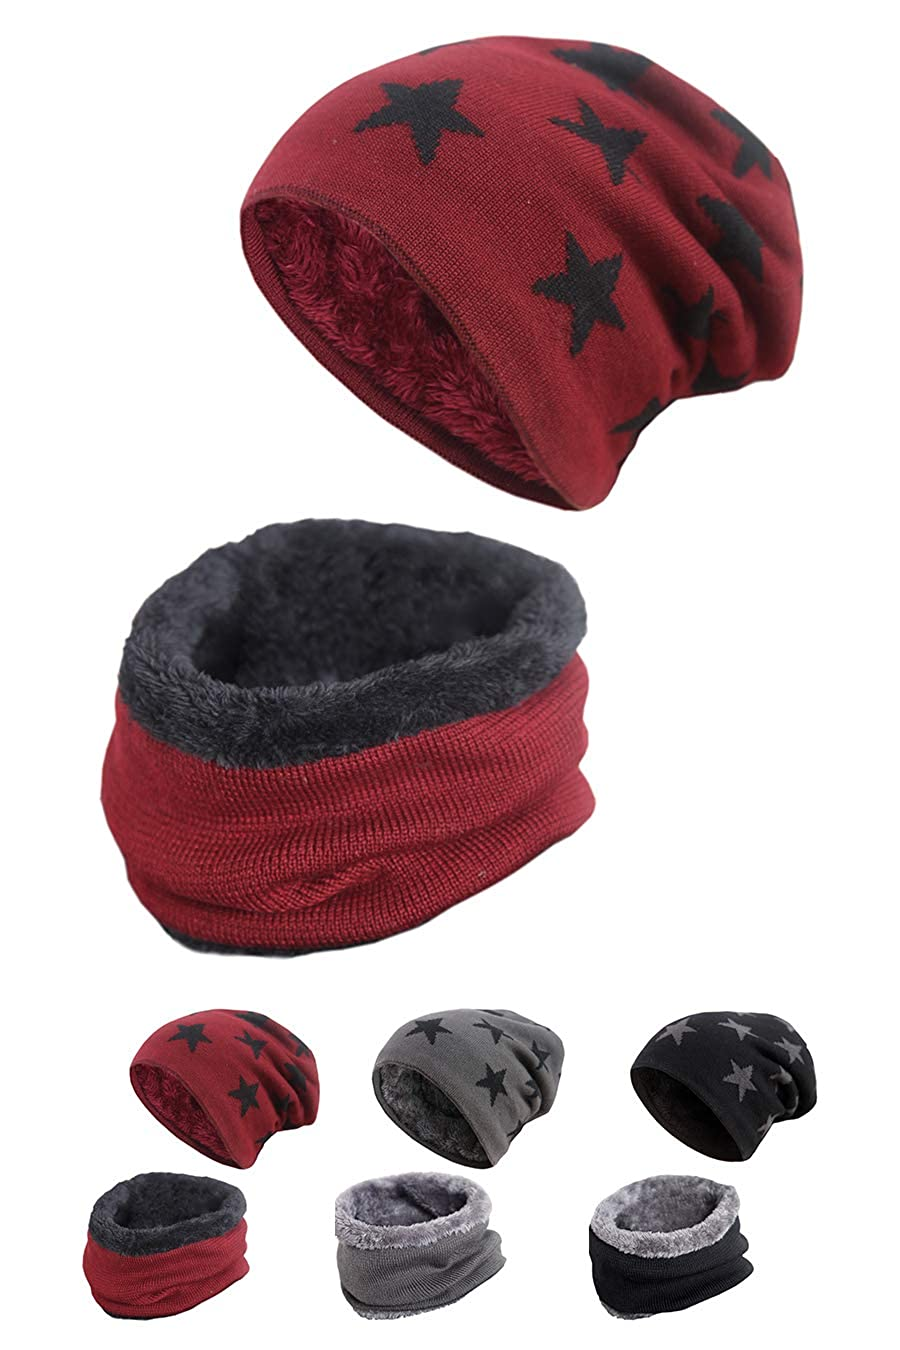 STYLE SLICE Winter Hats Fleece Lined Hat and Scarf Sets for Women Men Unisex Star Print - Beanie Circle Loop Infinity Scarfs Neck Warmer - Black Burgundy Grey - Ski Snowboard Warm Winter Beeny Knitted